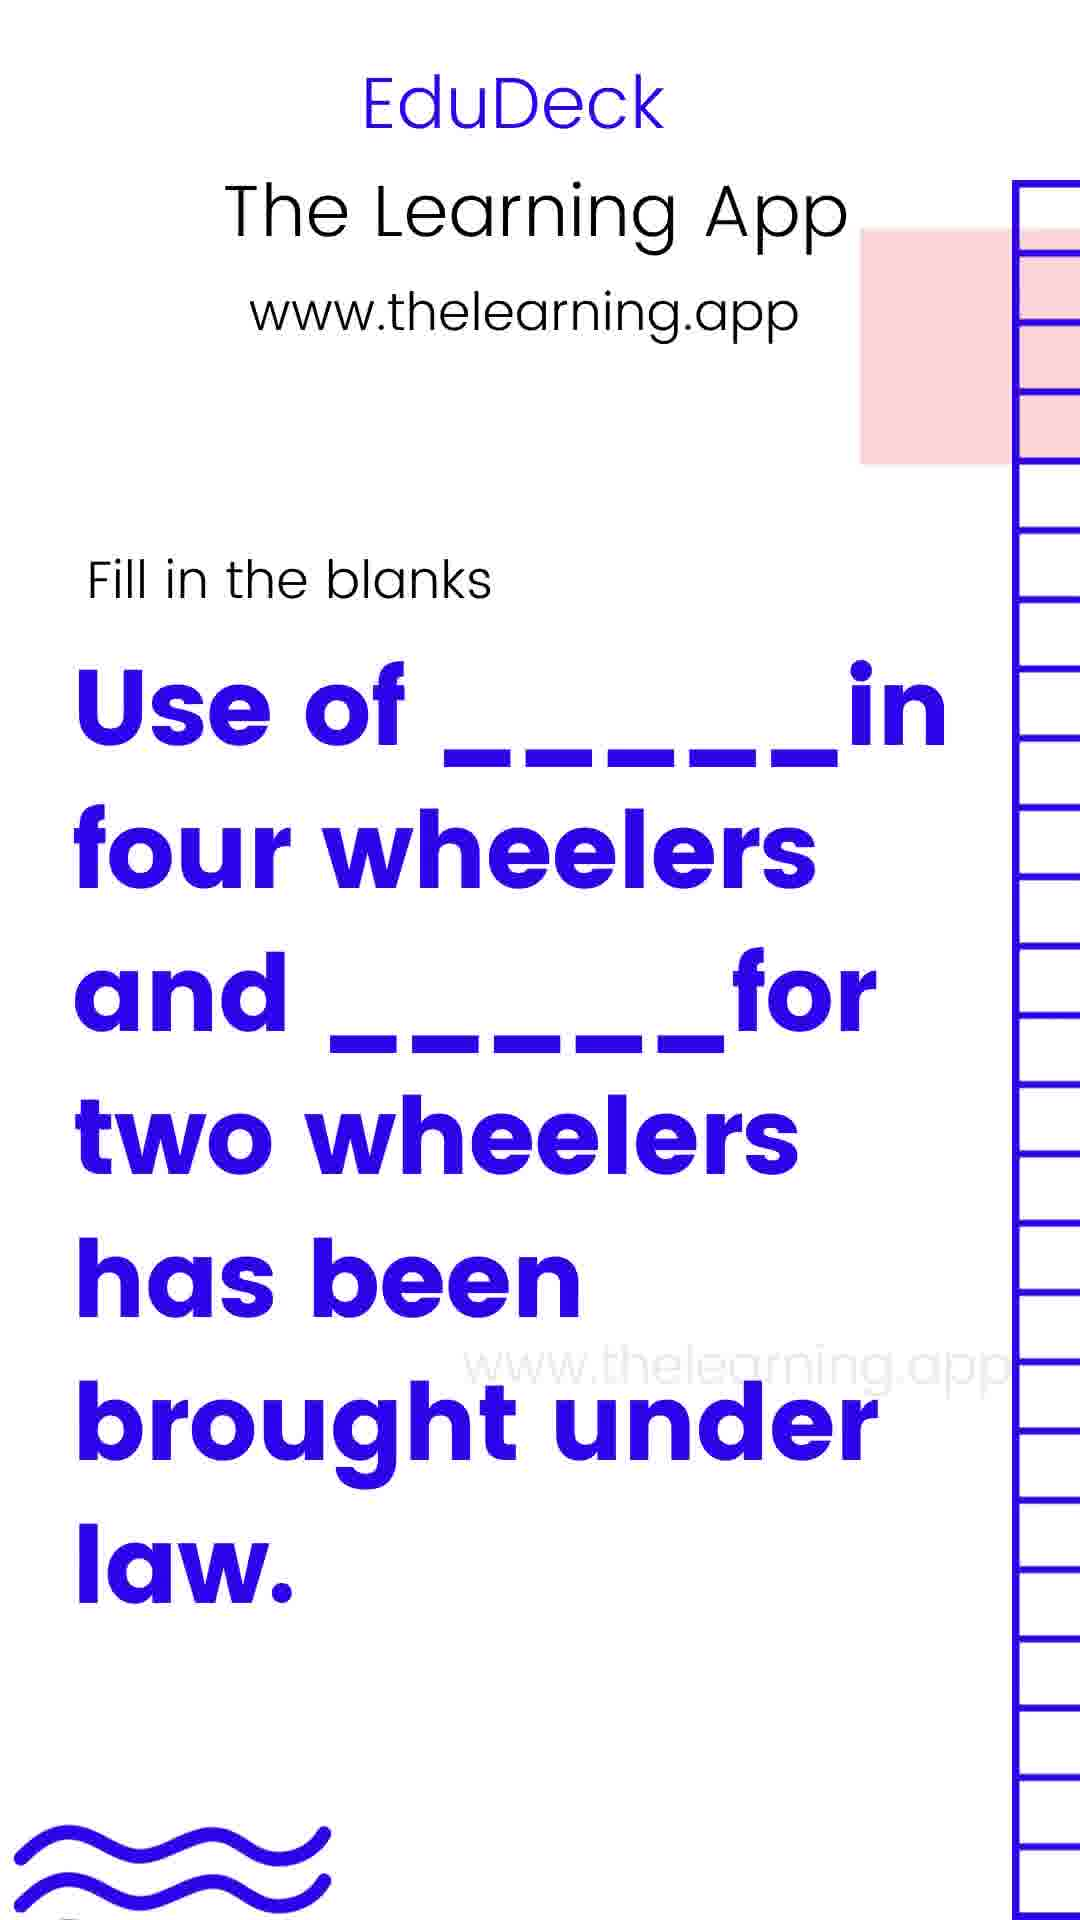 Samacheer Kalvi Book Back Answer - Use of _____________in four wheelers and _______for two wheelers has been brought under...